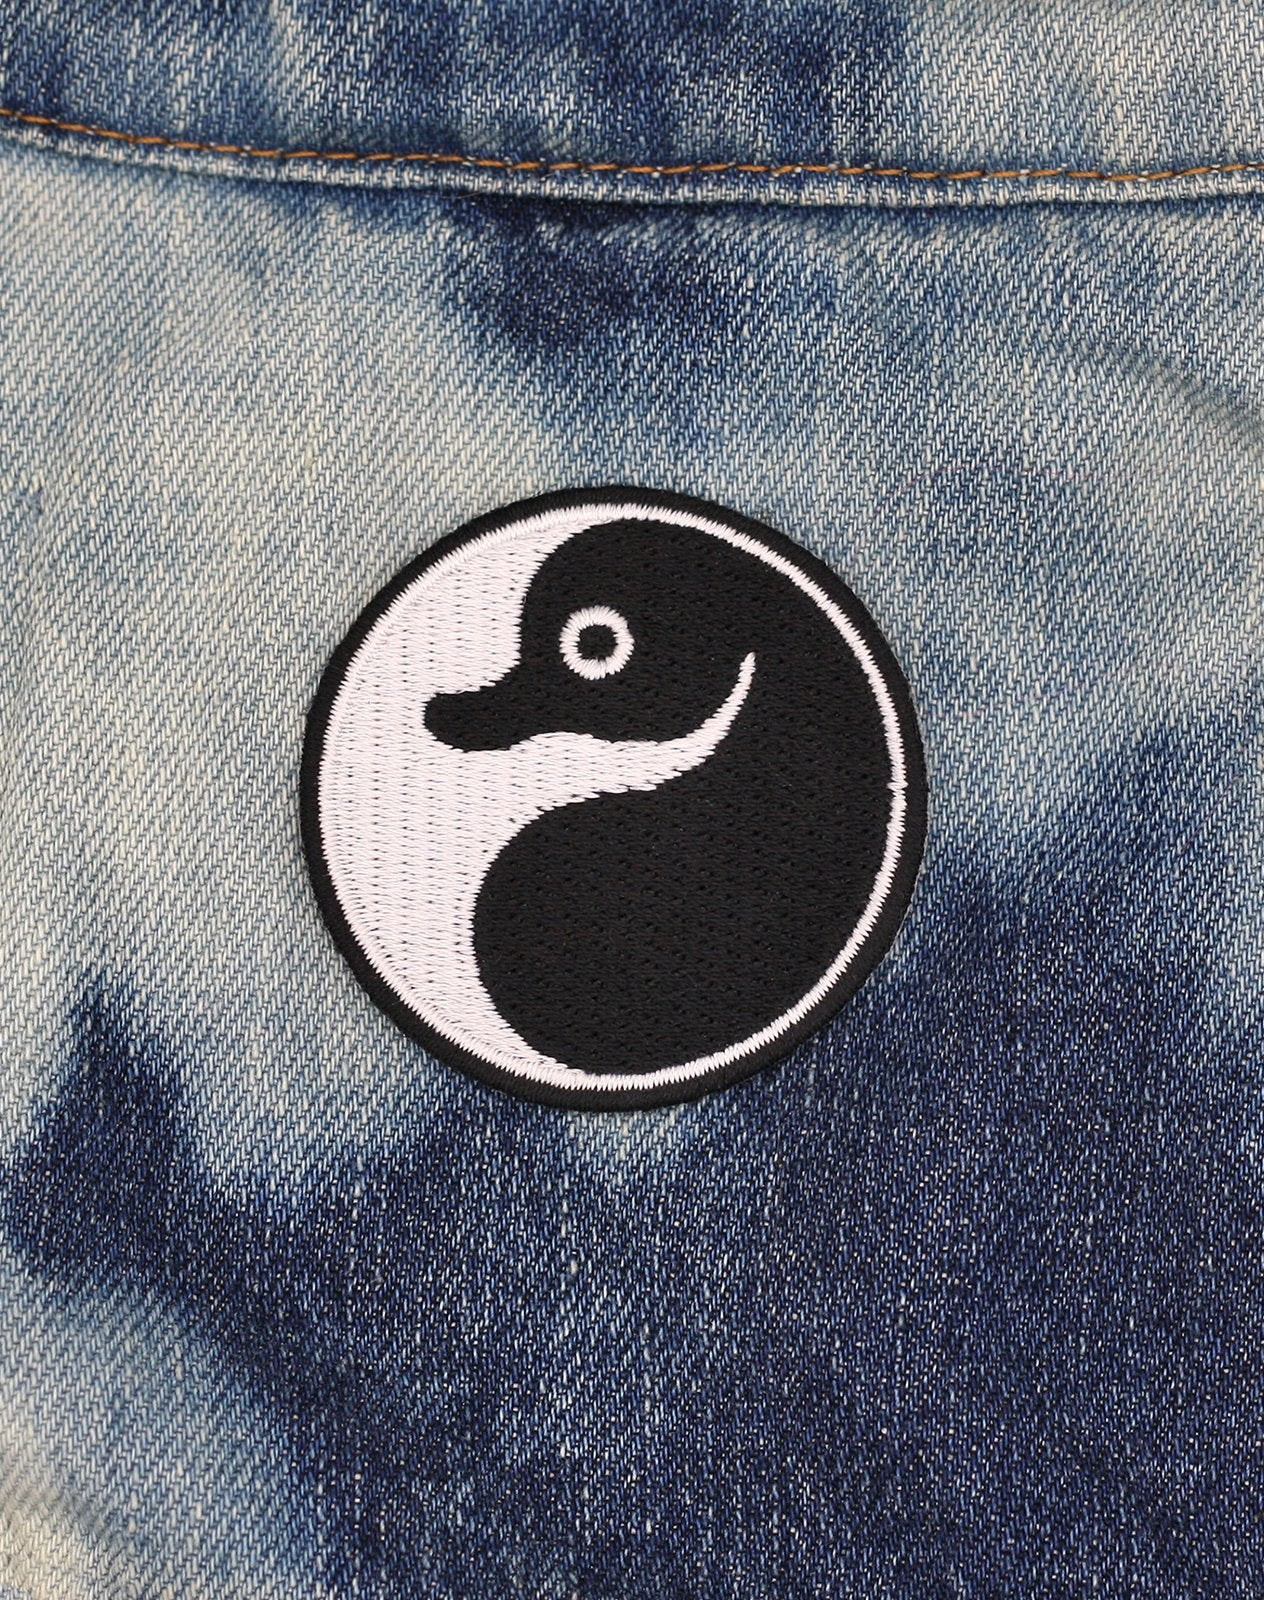 School of Platypus Yin Yang Iron on patch badge on denim jacket